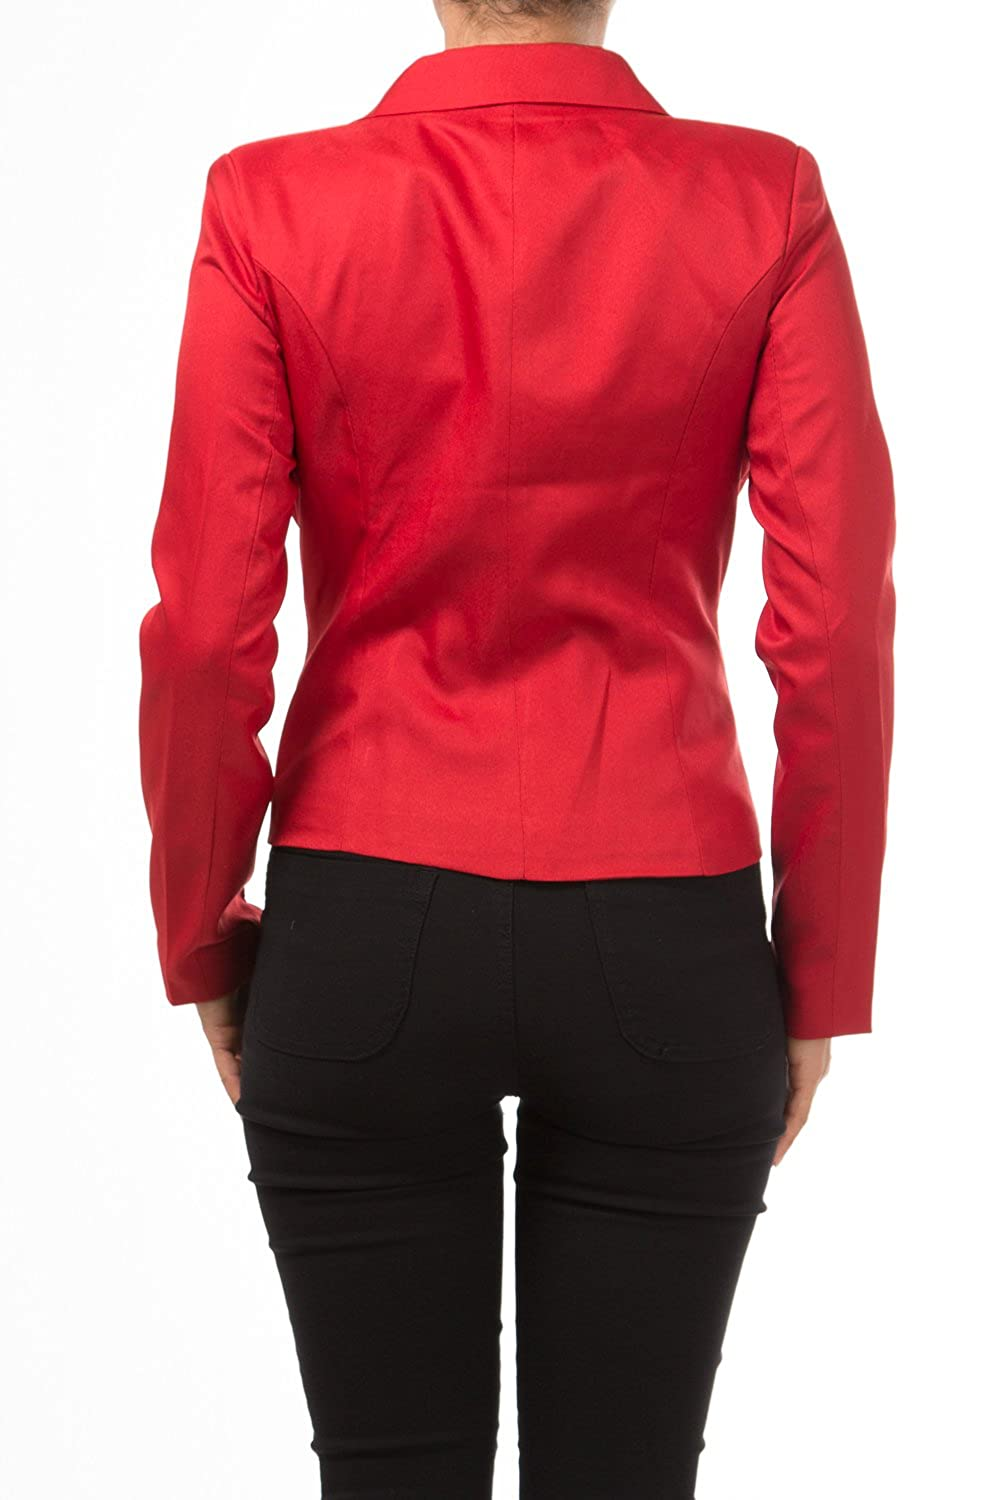 Leather jacket olx - Amazon Com Bangbangusa Womens Formal Solid Color Blazer Jacket With Notched Collar And 2 Pockets Clothing